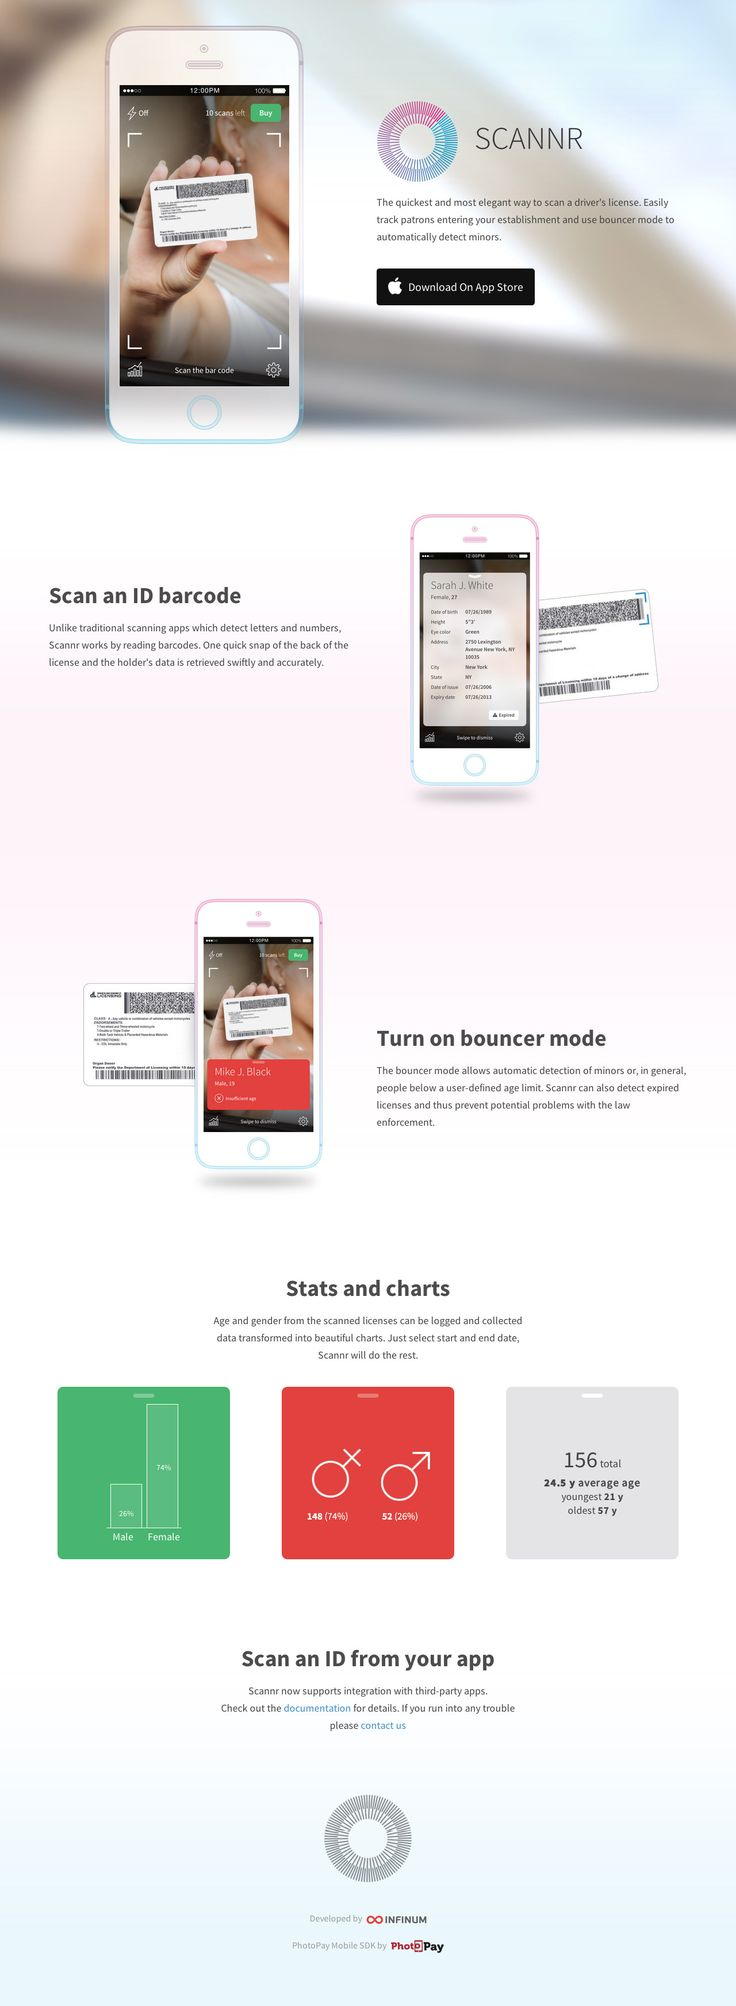 Clean responsive one pager for 'Scannr' - a new iPhone app that provides a quick way to scan a drivers license and automatically detect minors.